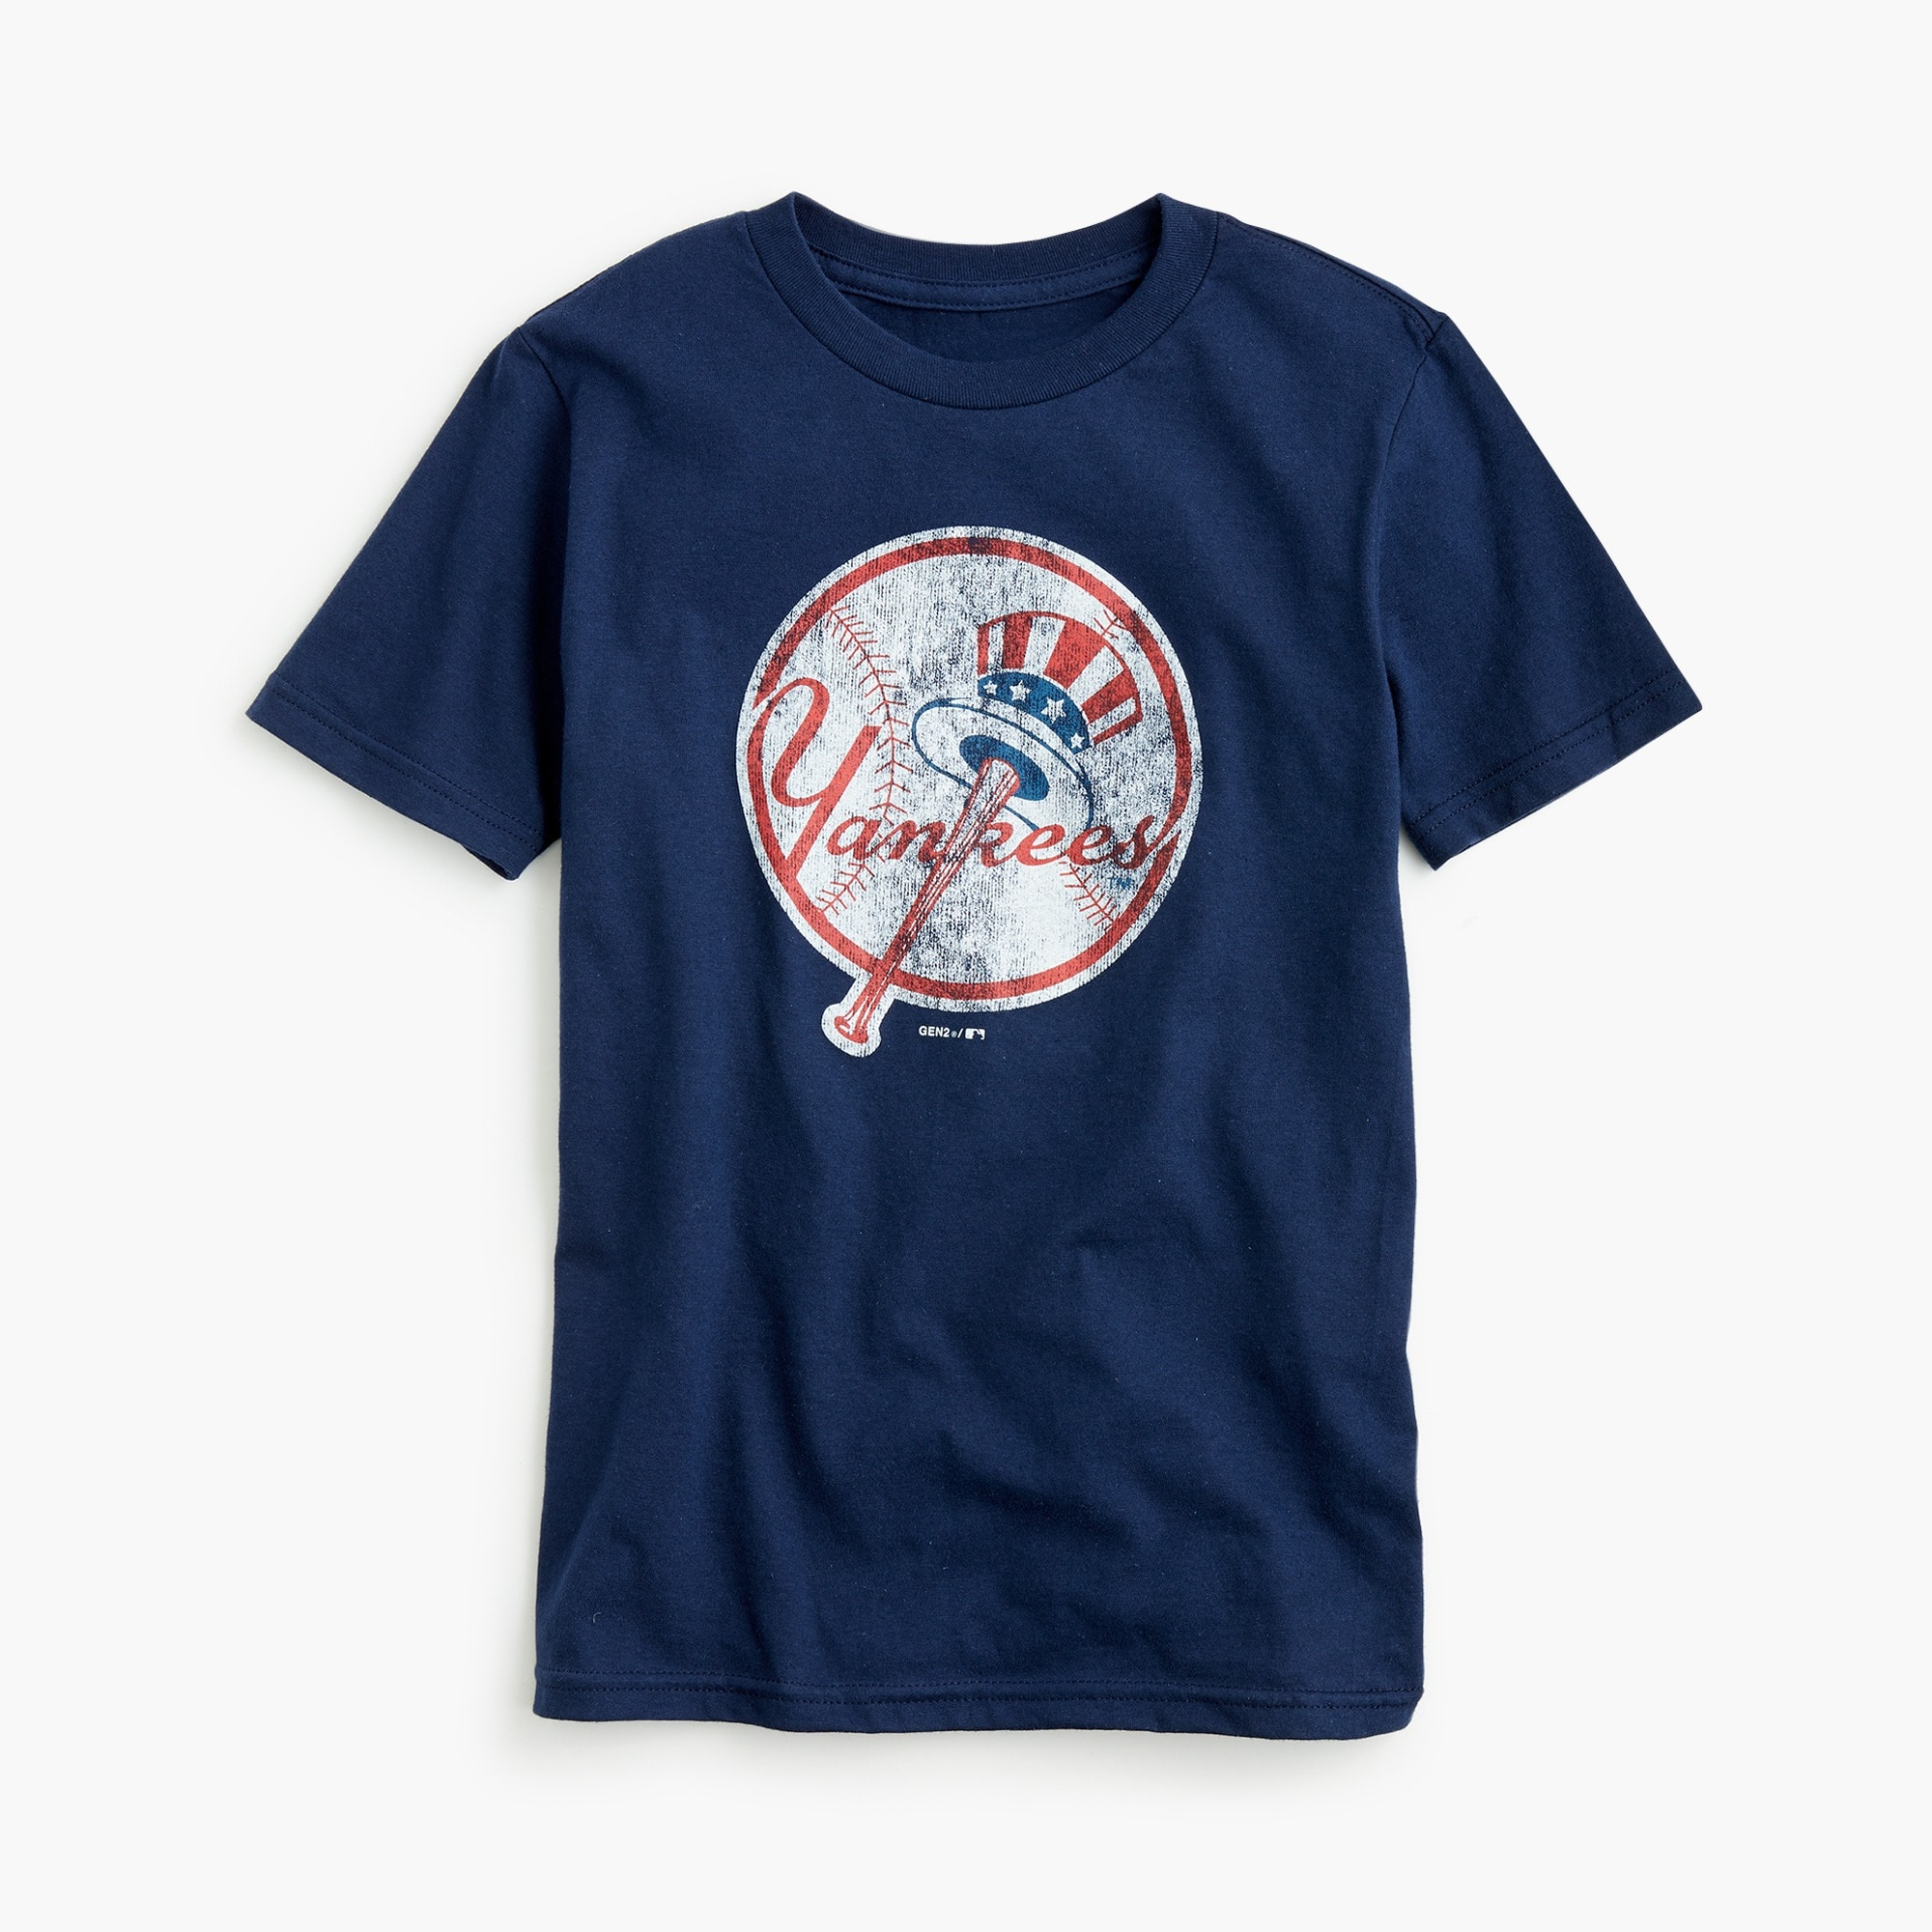 boys Kids' New York Yankees T-shirt